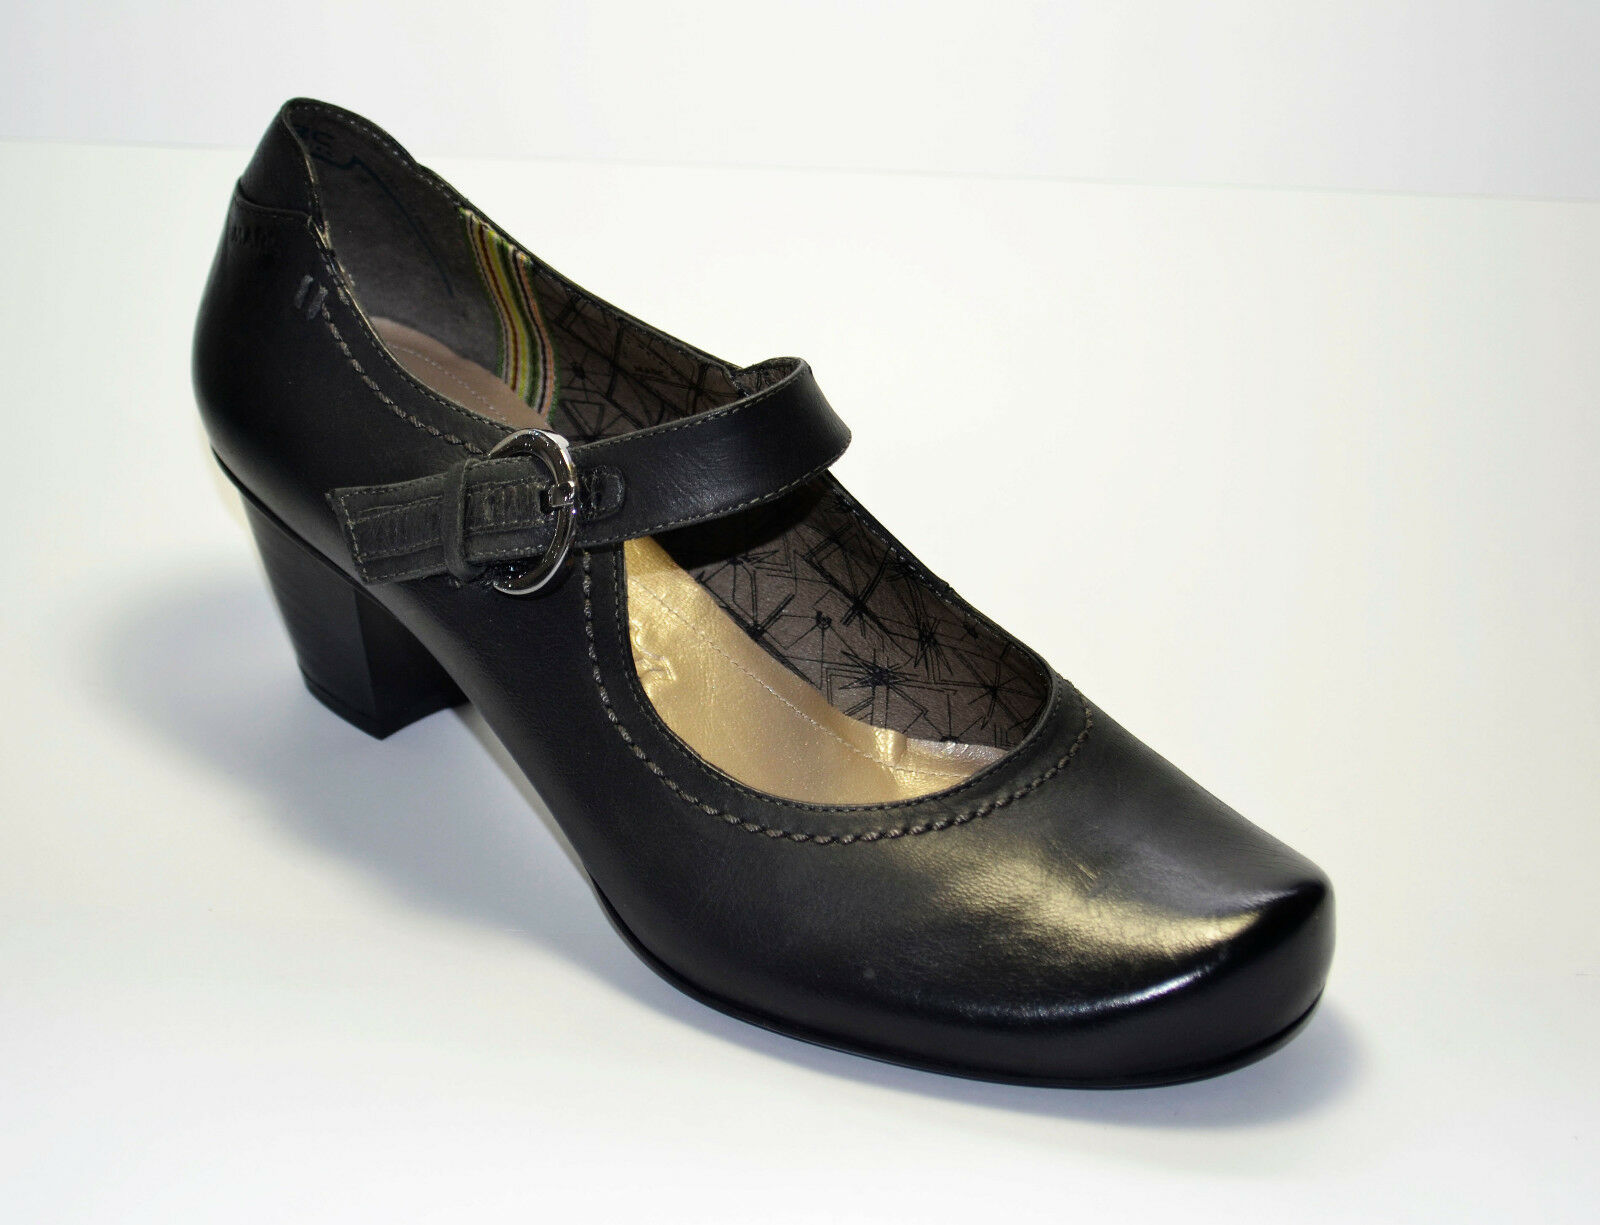 Marc chaussures femmes Fermoirs Chaussure noir Taille 38 (PE 1921 s)